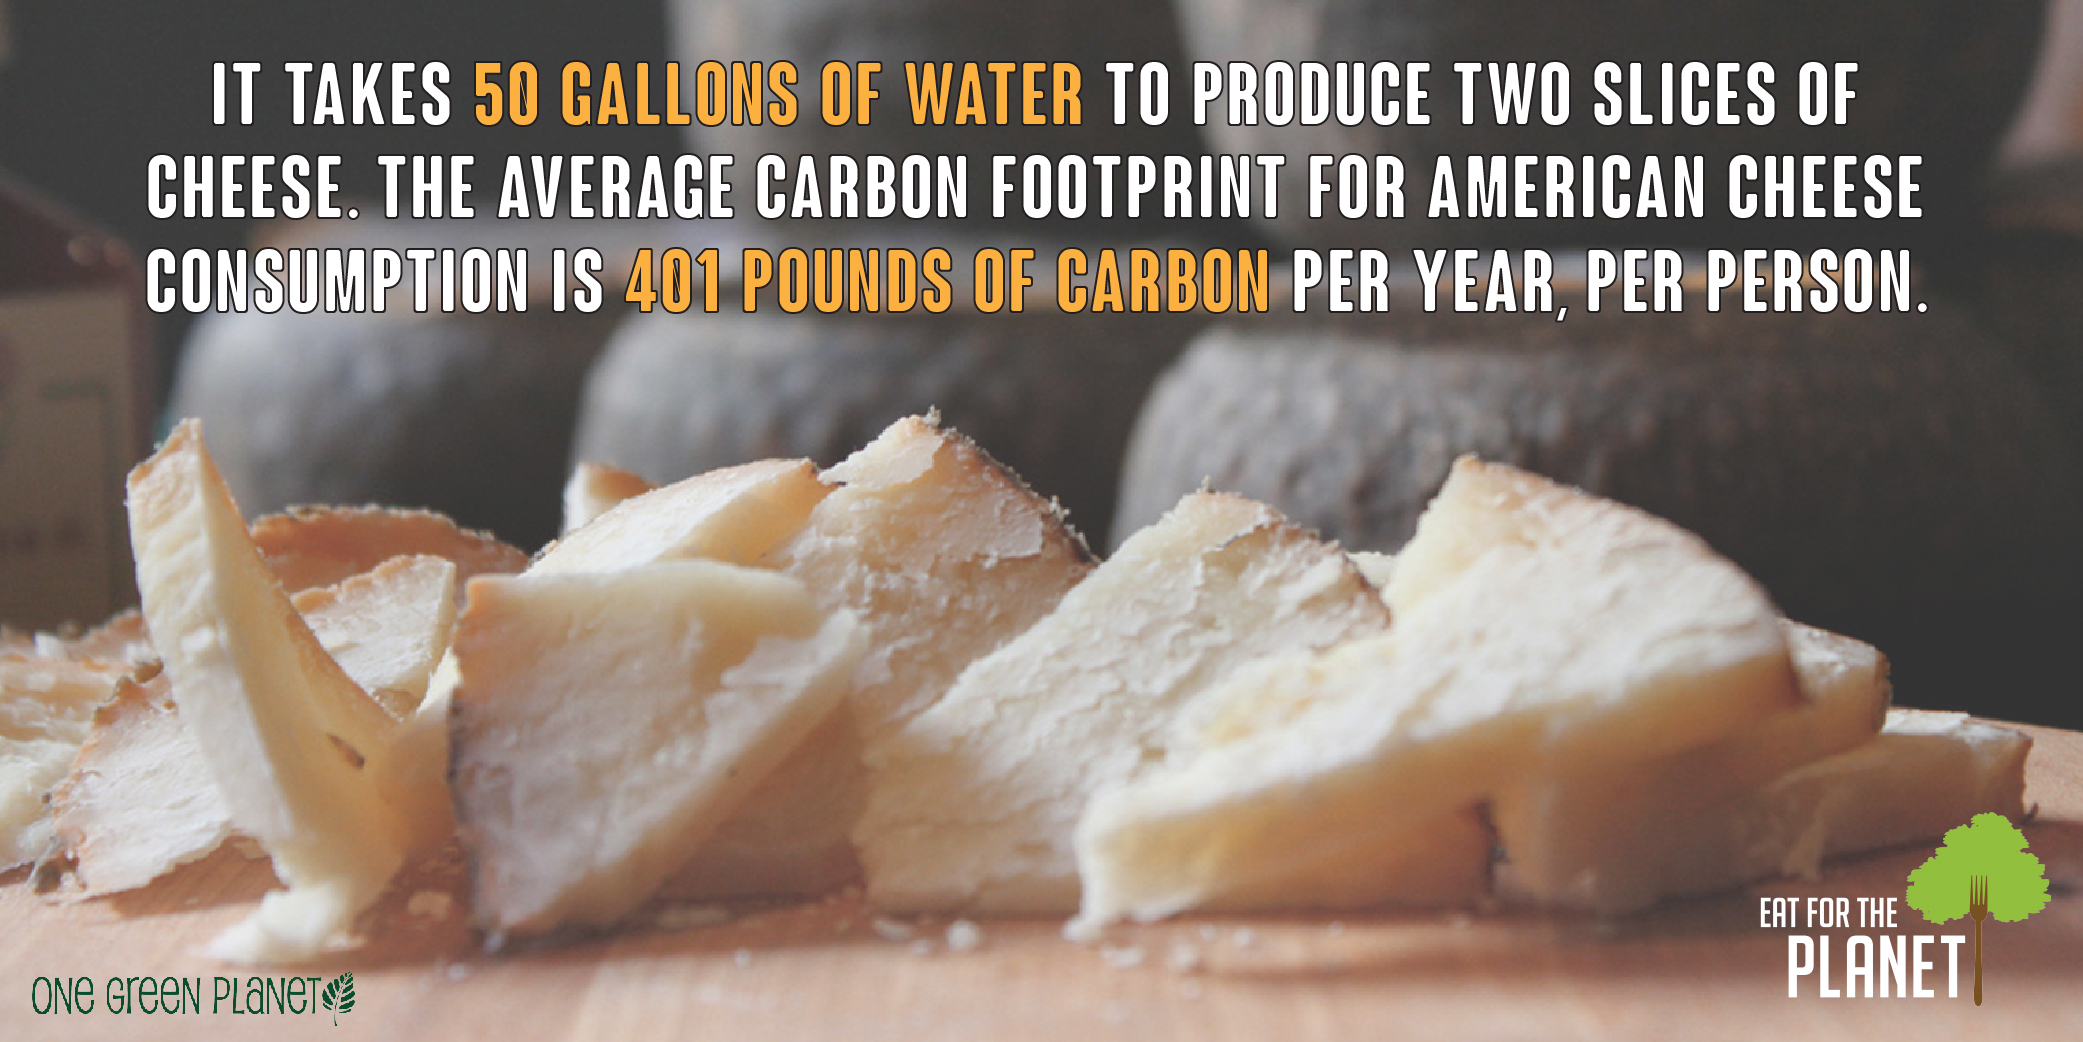 Are You Taking a Bite Out of the Environment? Top 10 Most Environmentally Destructive Foods